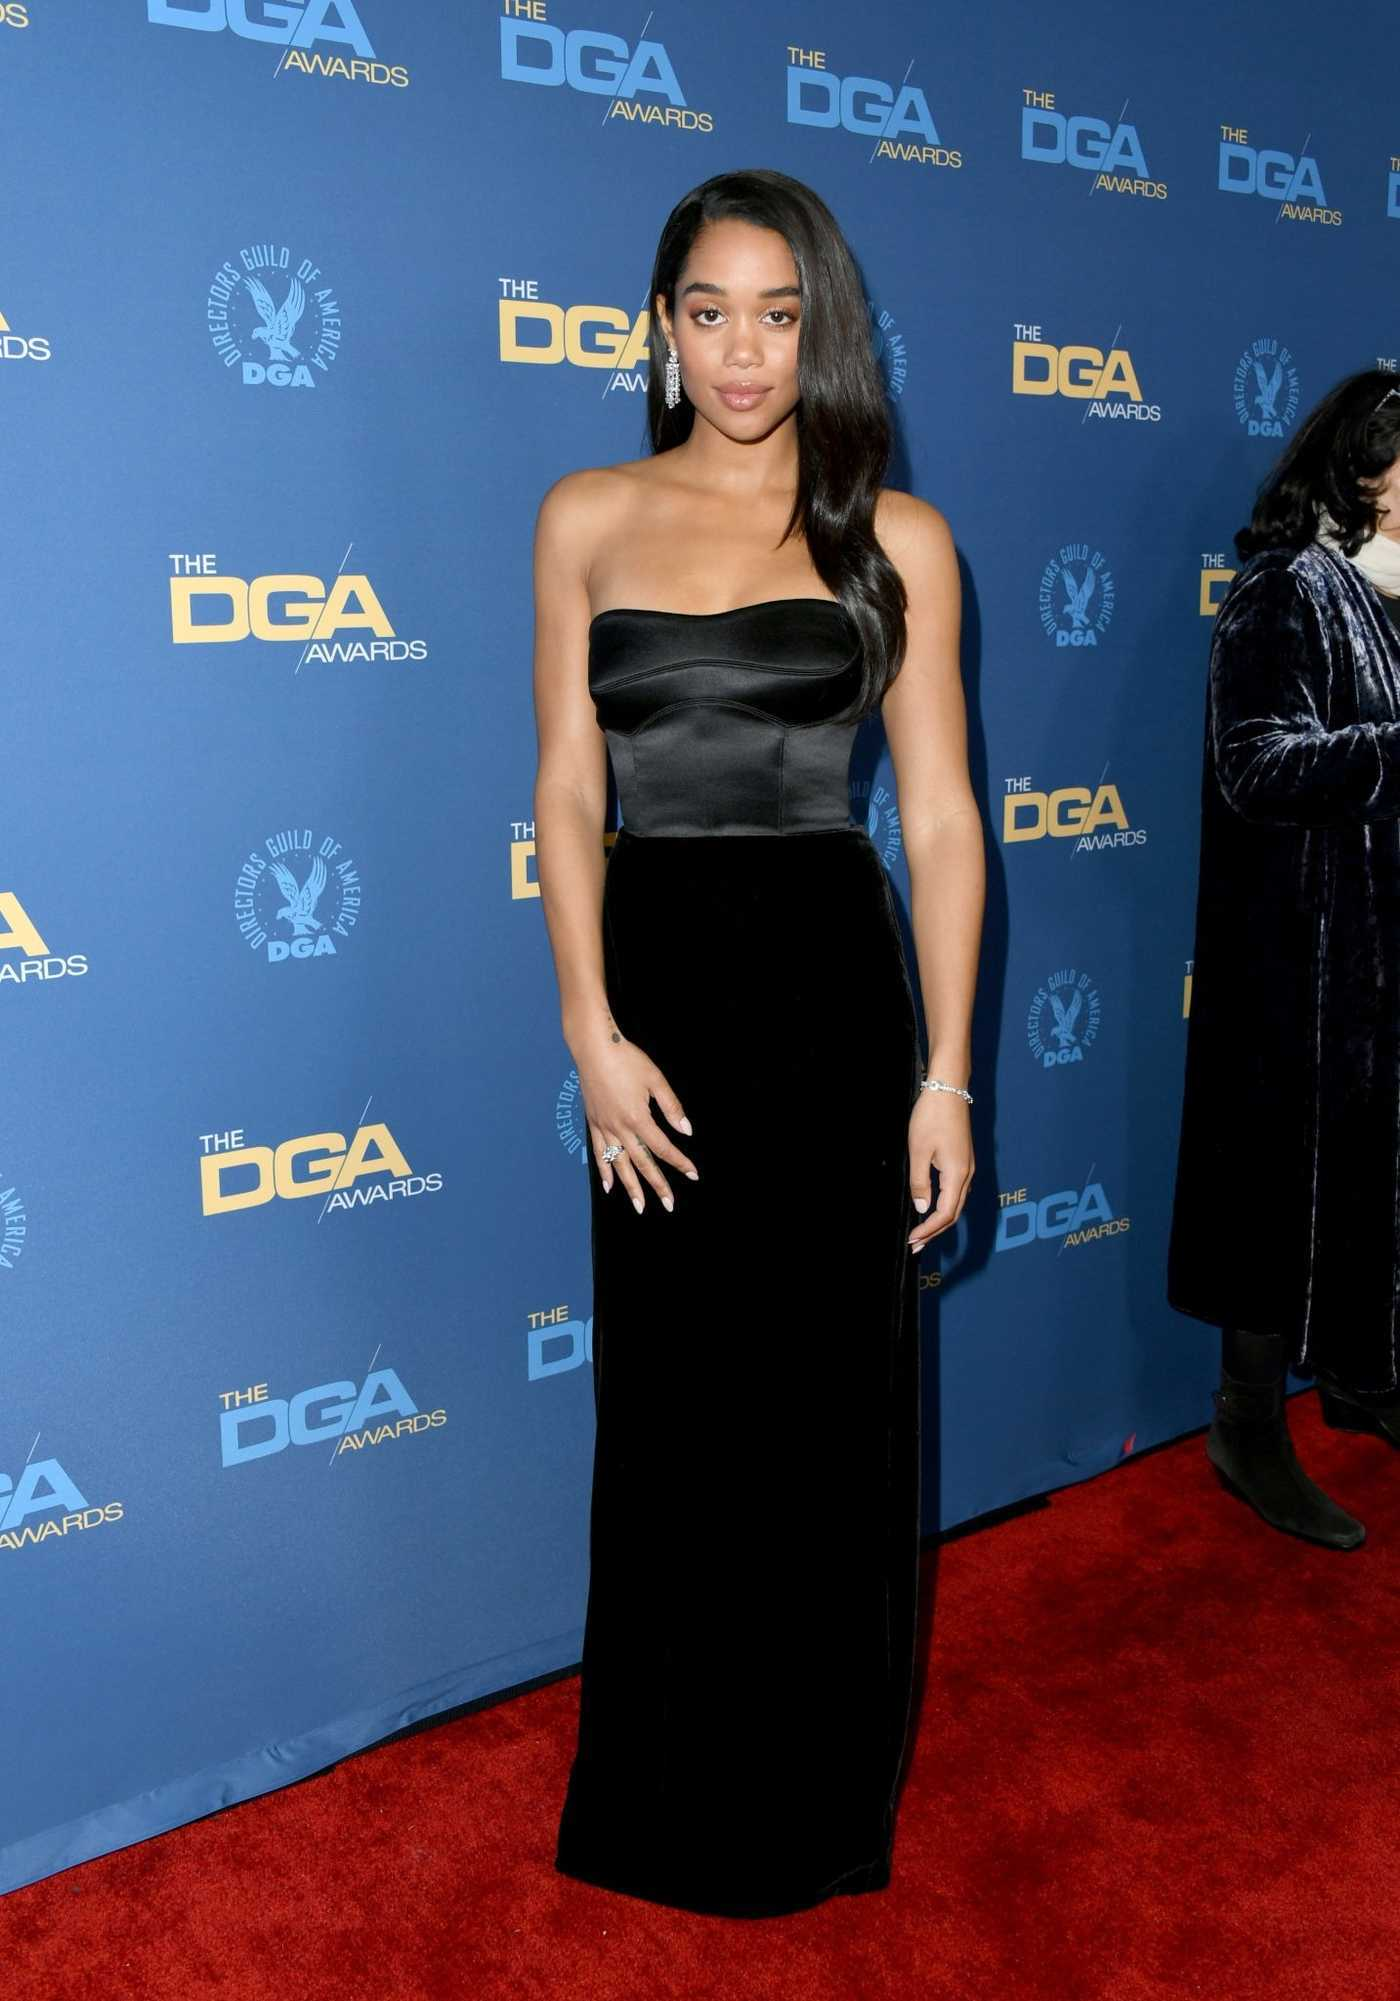 Laura Harrier Attends the 71st Annual Directors Guild of America Awards in Hollywood 02/02/2019